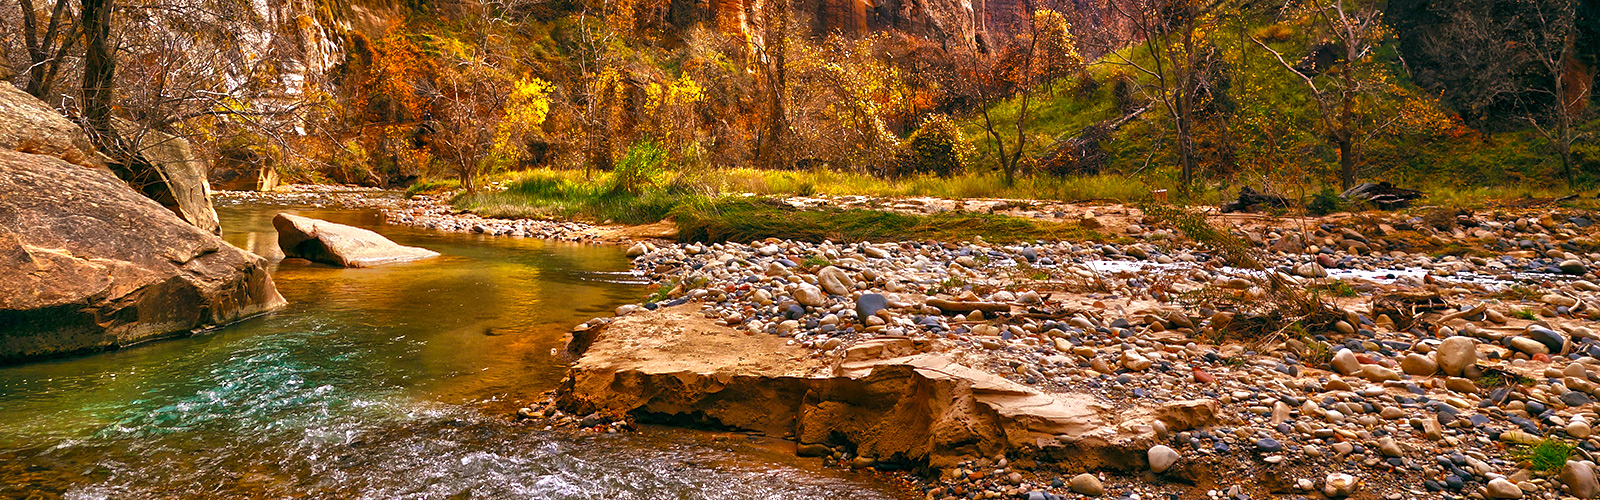 The Must Do's of Zion National Park